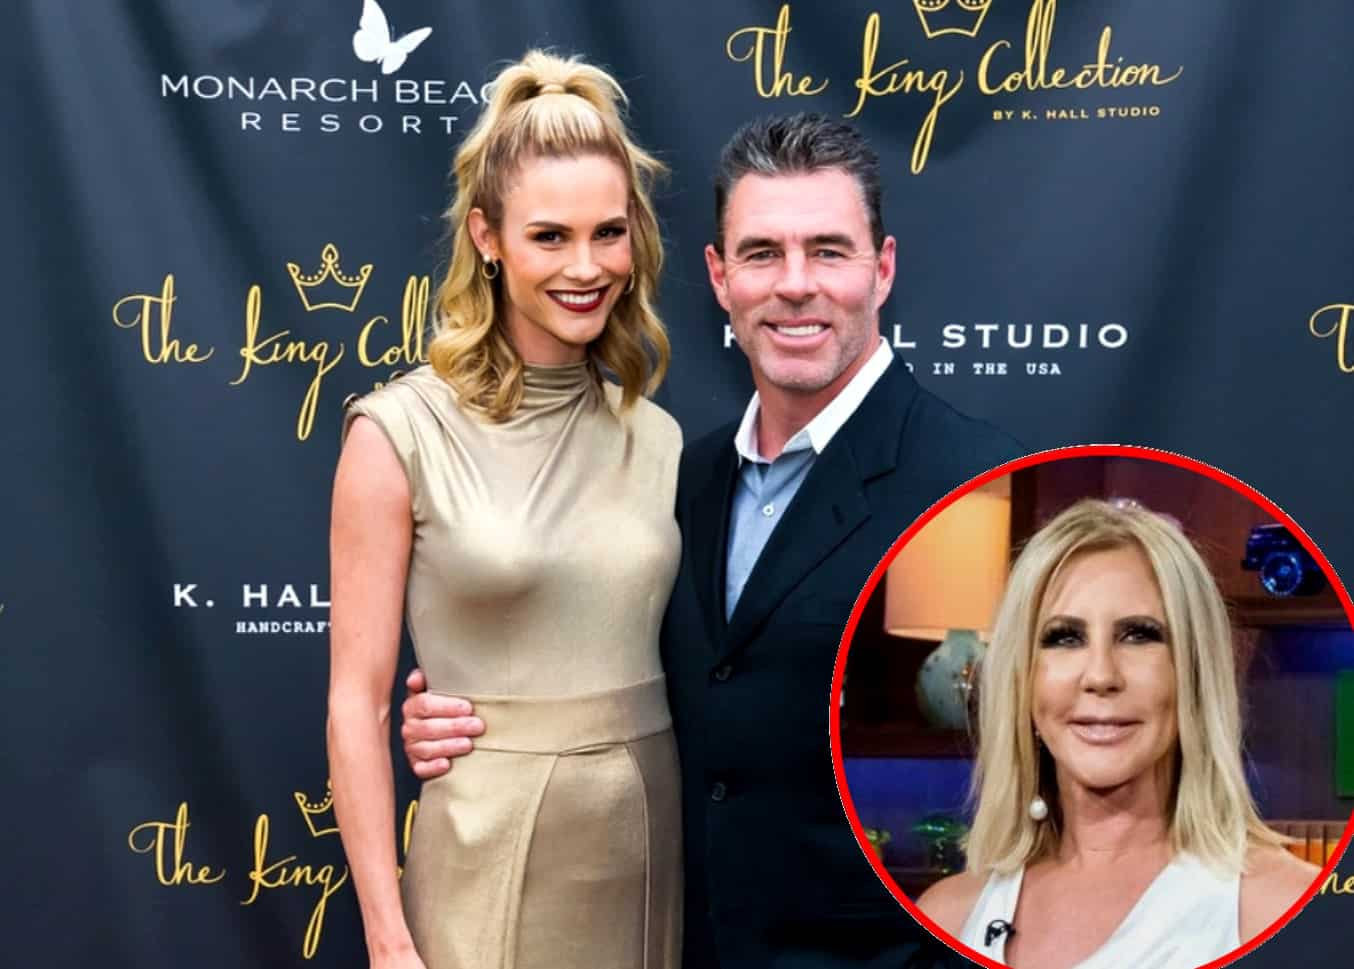 RHOC's Meghan King Edmonds Called Cops Twice on Jim in Two Days, Details of Calls Revealed as Vicki Gunvalson Talks Split After RHOC Prediction